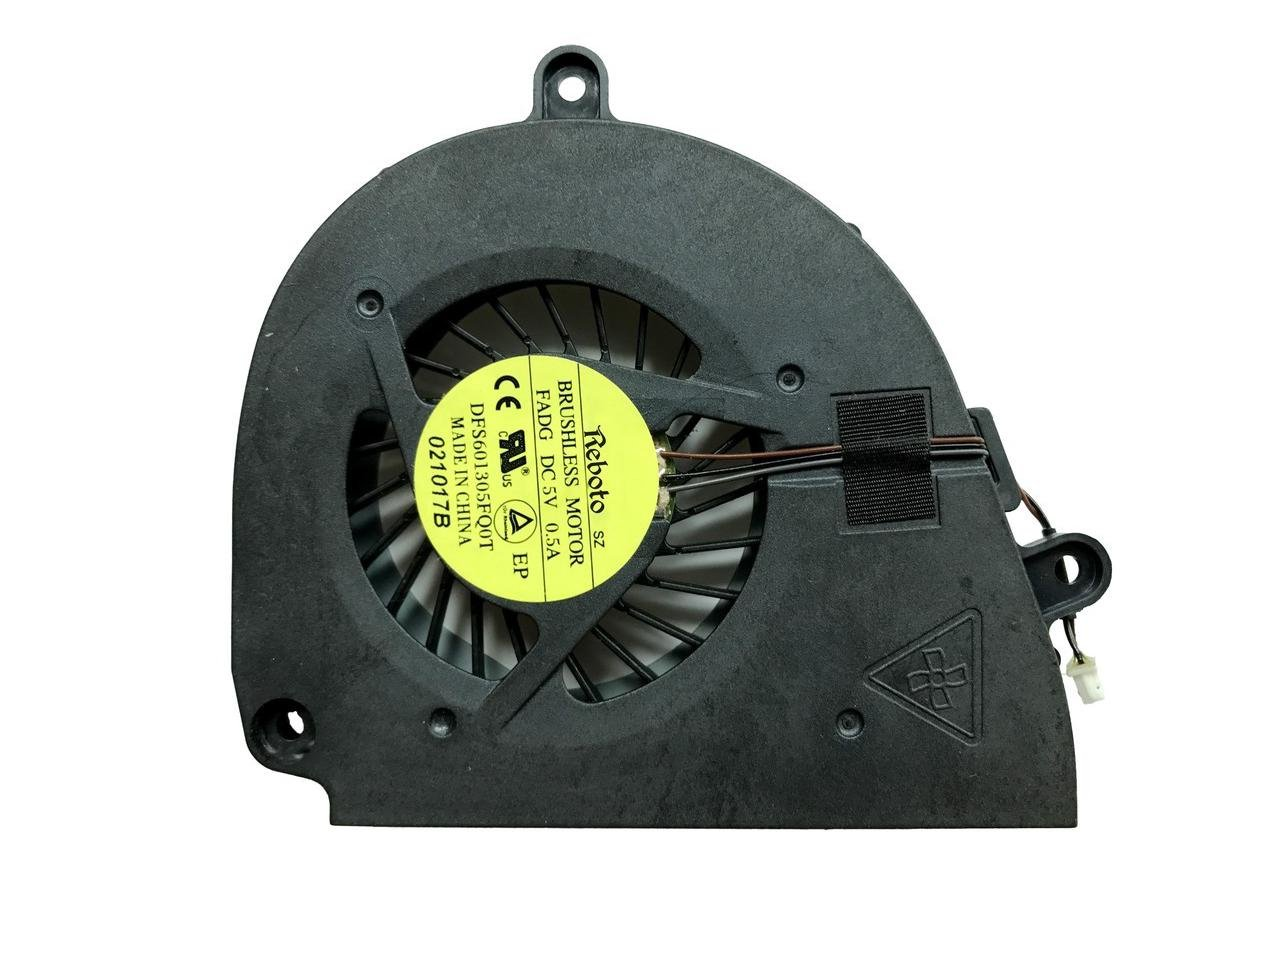 New Laptop CPU Cooling Fan For Acer TravelMate P253-E P235-M P253-MG Aspire E1-531 E1-531G E1-571 E1-571G V3-531 V3-531G V3-571 V3-571G Series